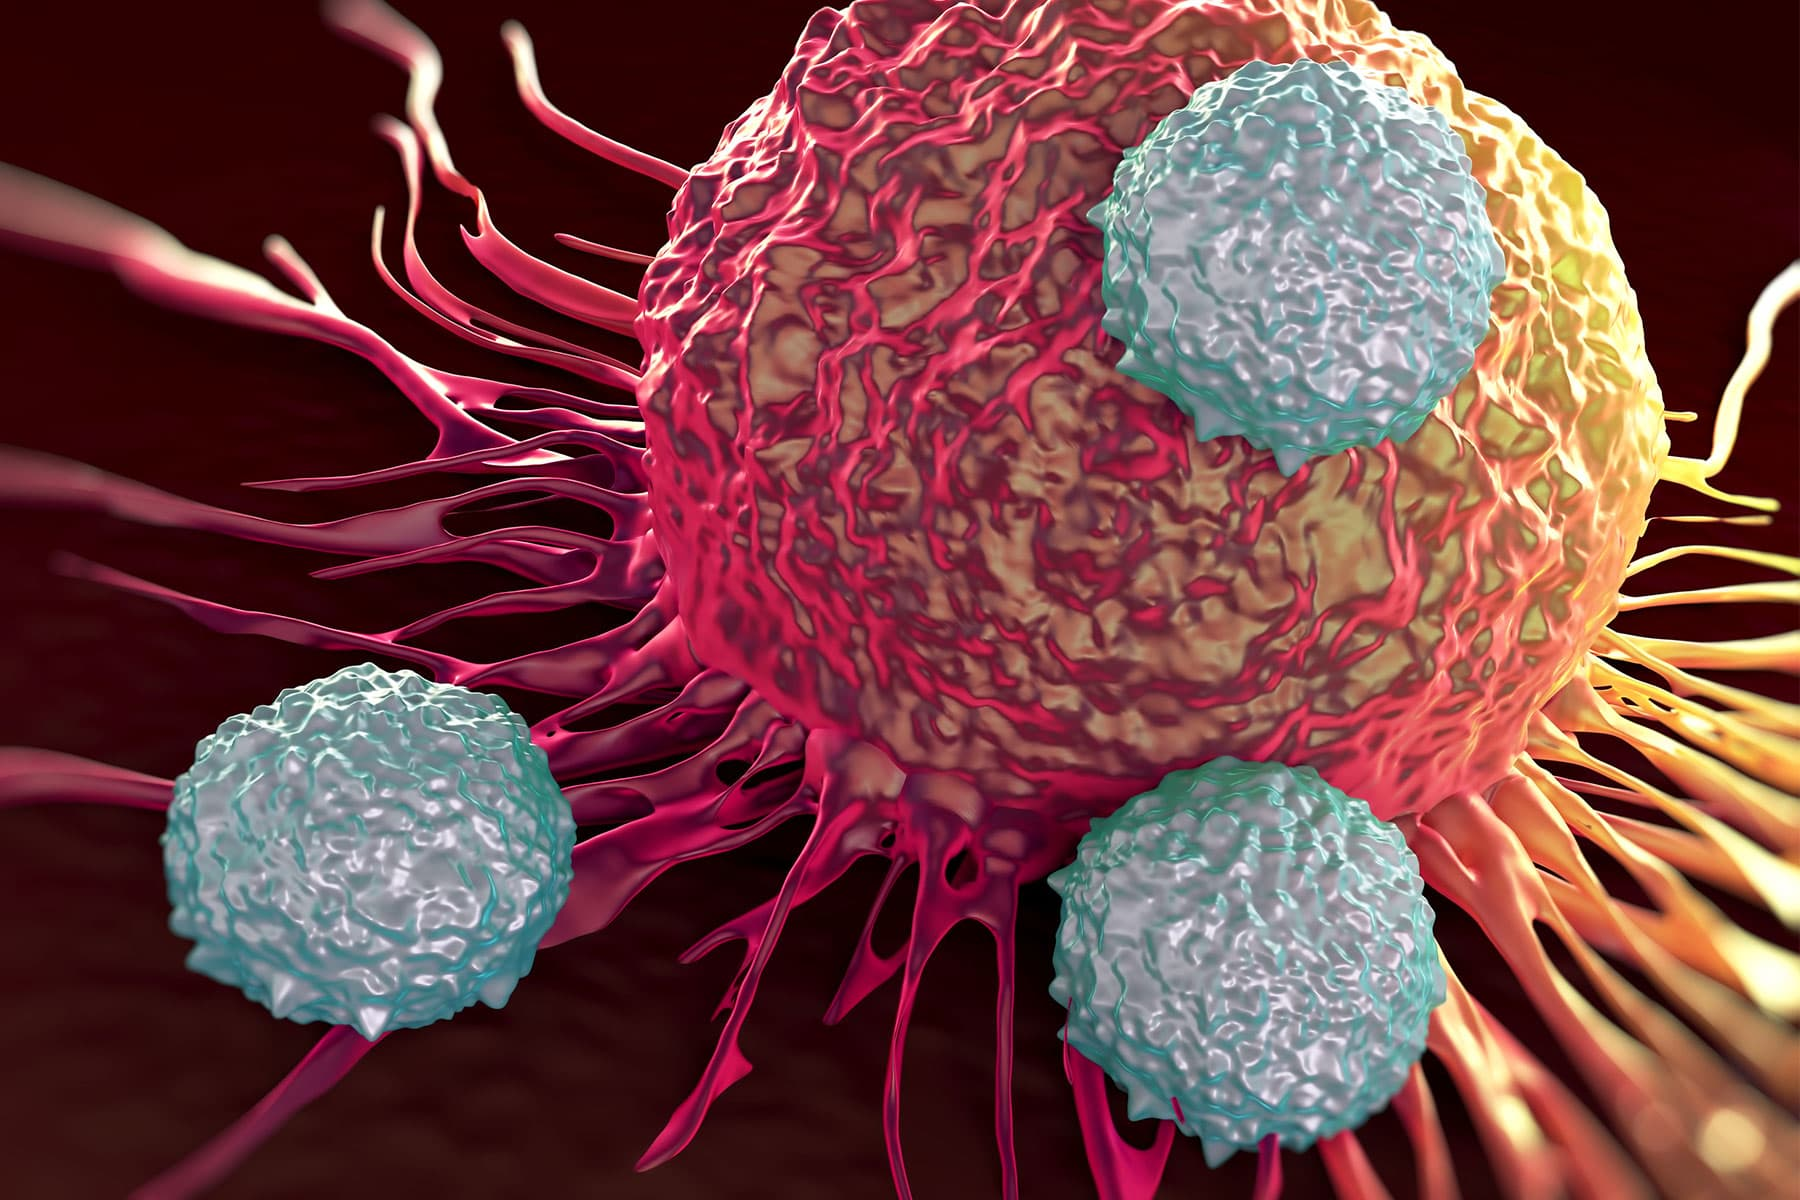 Immunotherapy May Help Fight Some Advanced Colon Cancers